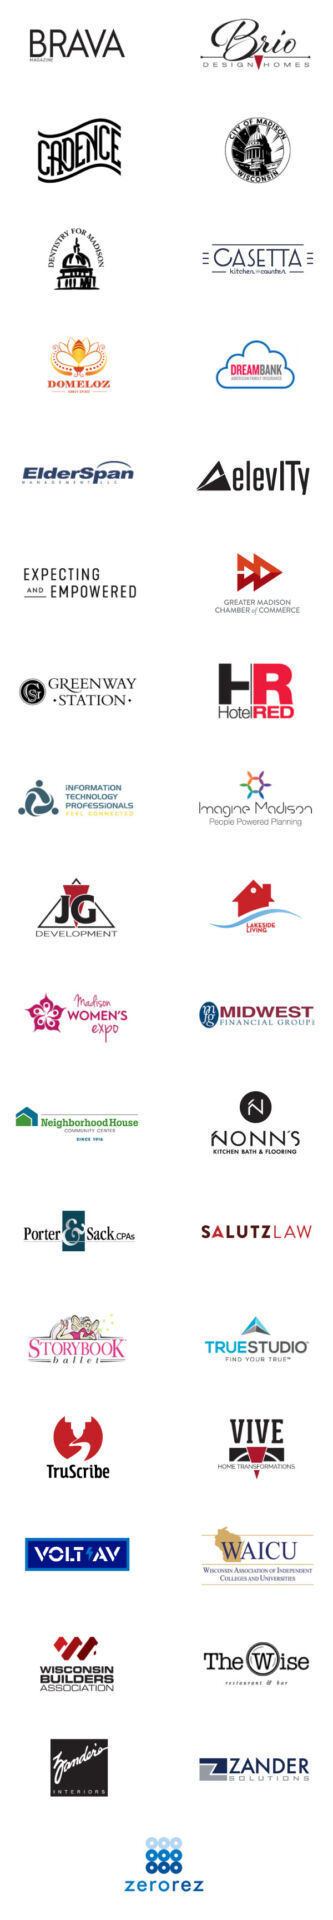 Regional & Local Brands We've Worked With - Mobile